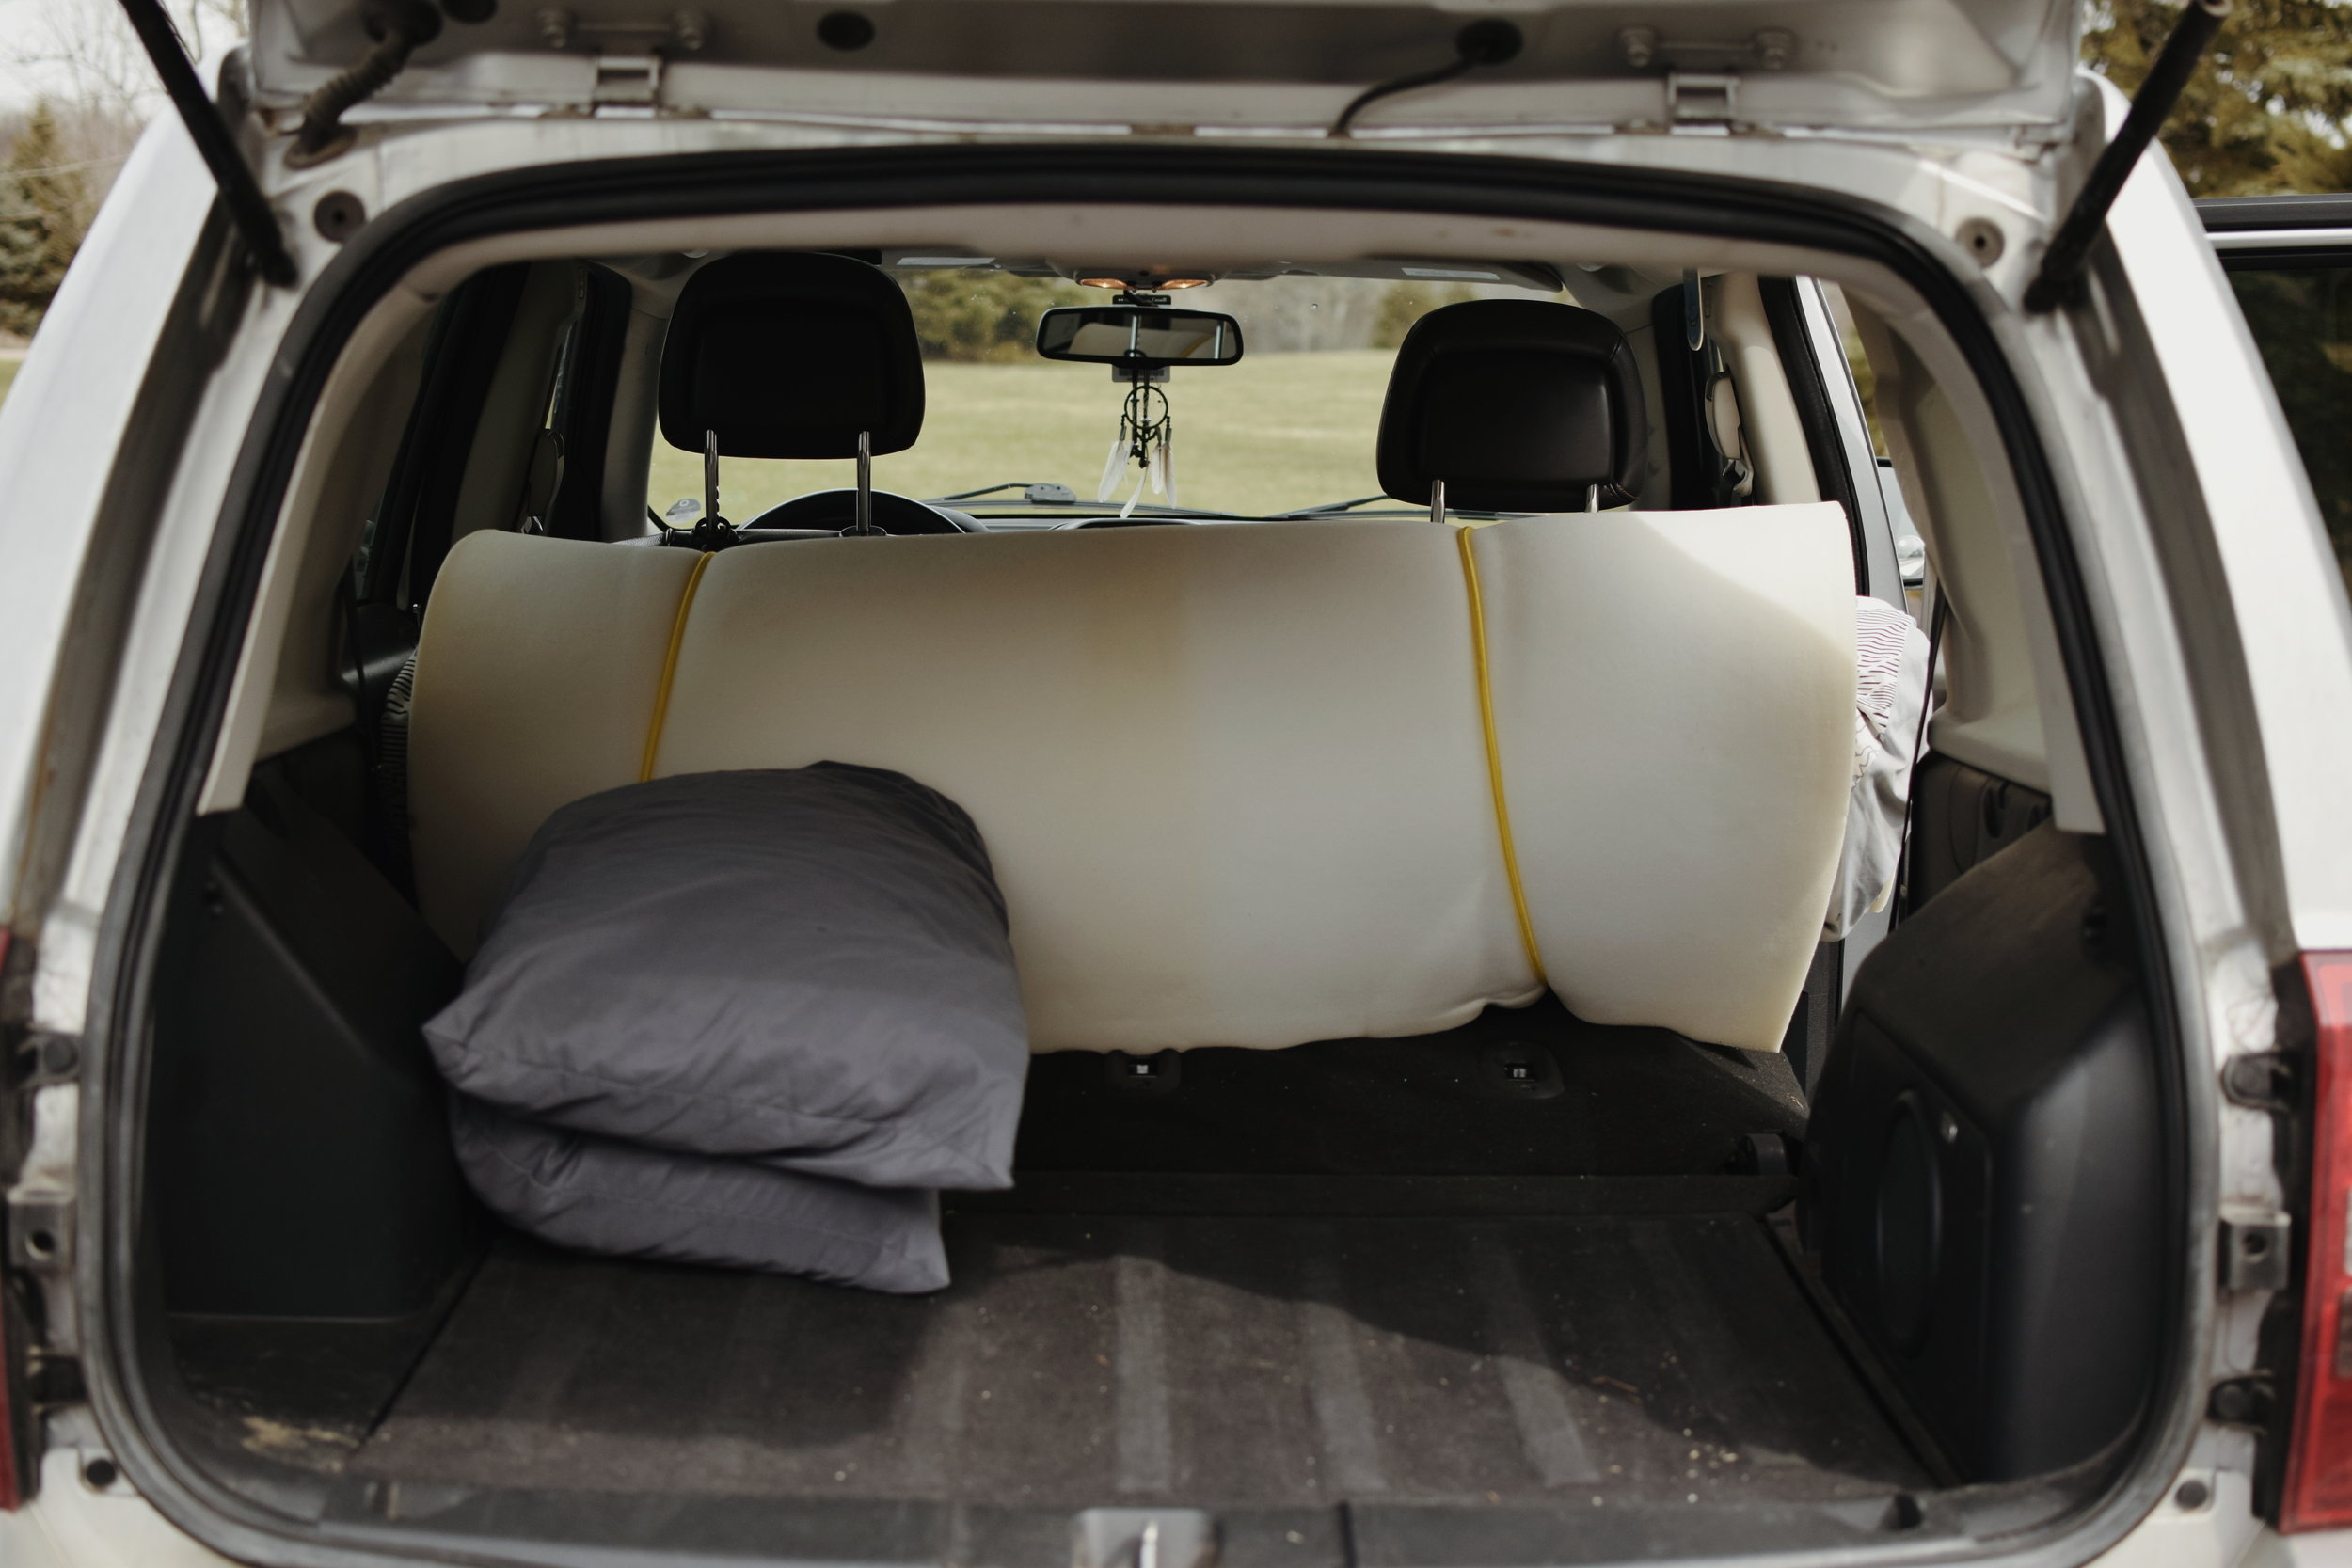 With all of my gear cleared out and moved to the front seats, I was left with a perfectly sized sleeping space for two people in the trunk of my car. I kept my bed rolled up like this for storage purposes, and to make it easy to roll out in just a few seconds.